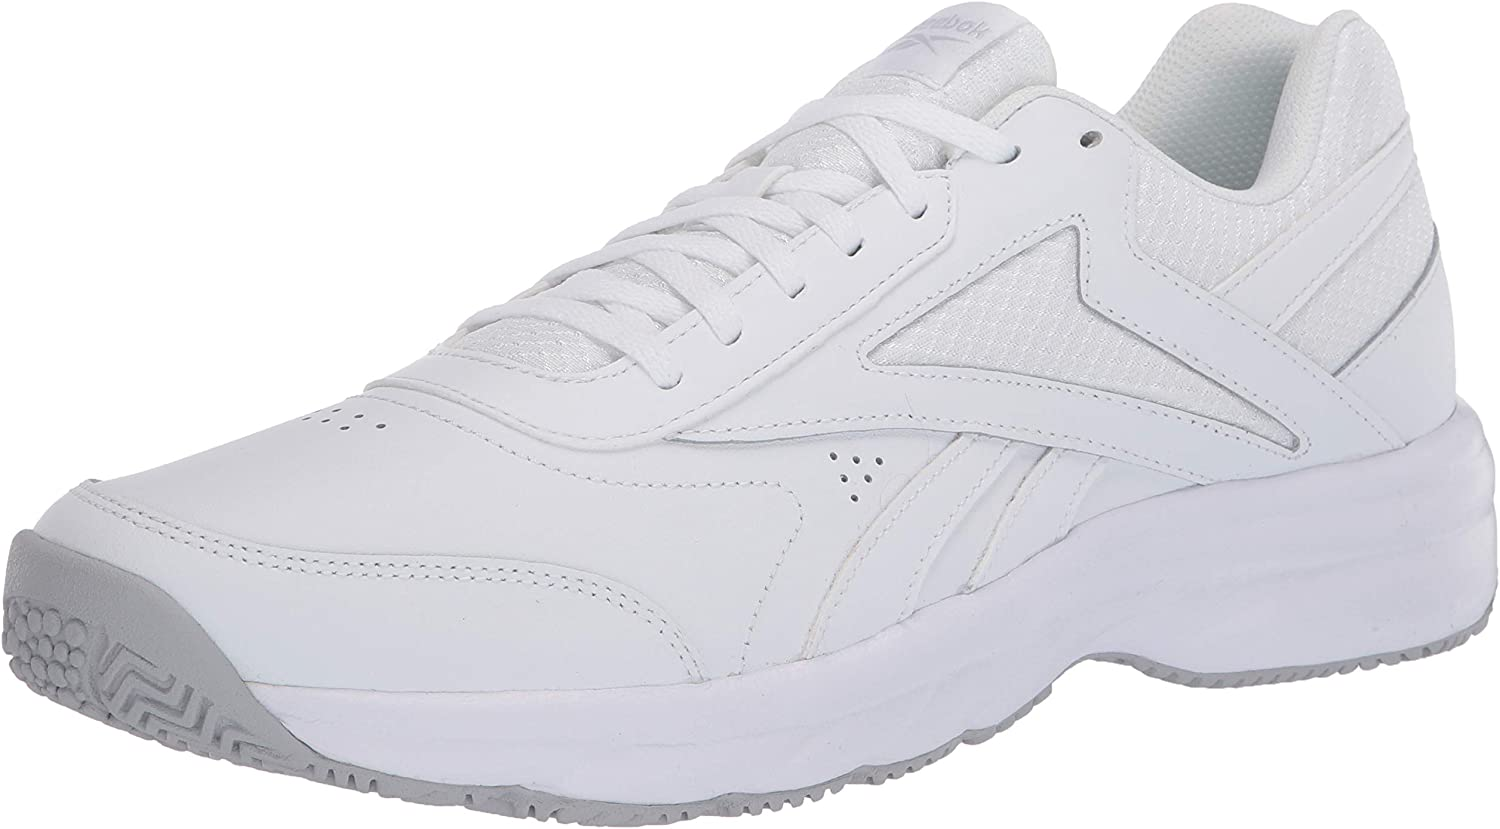 Men's Reebok One Cushion 3.0